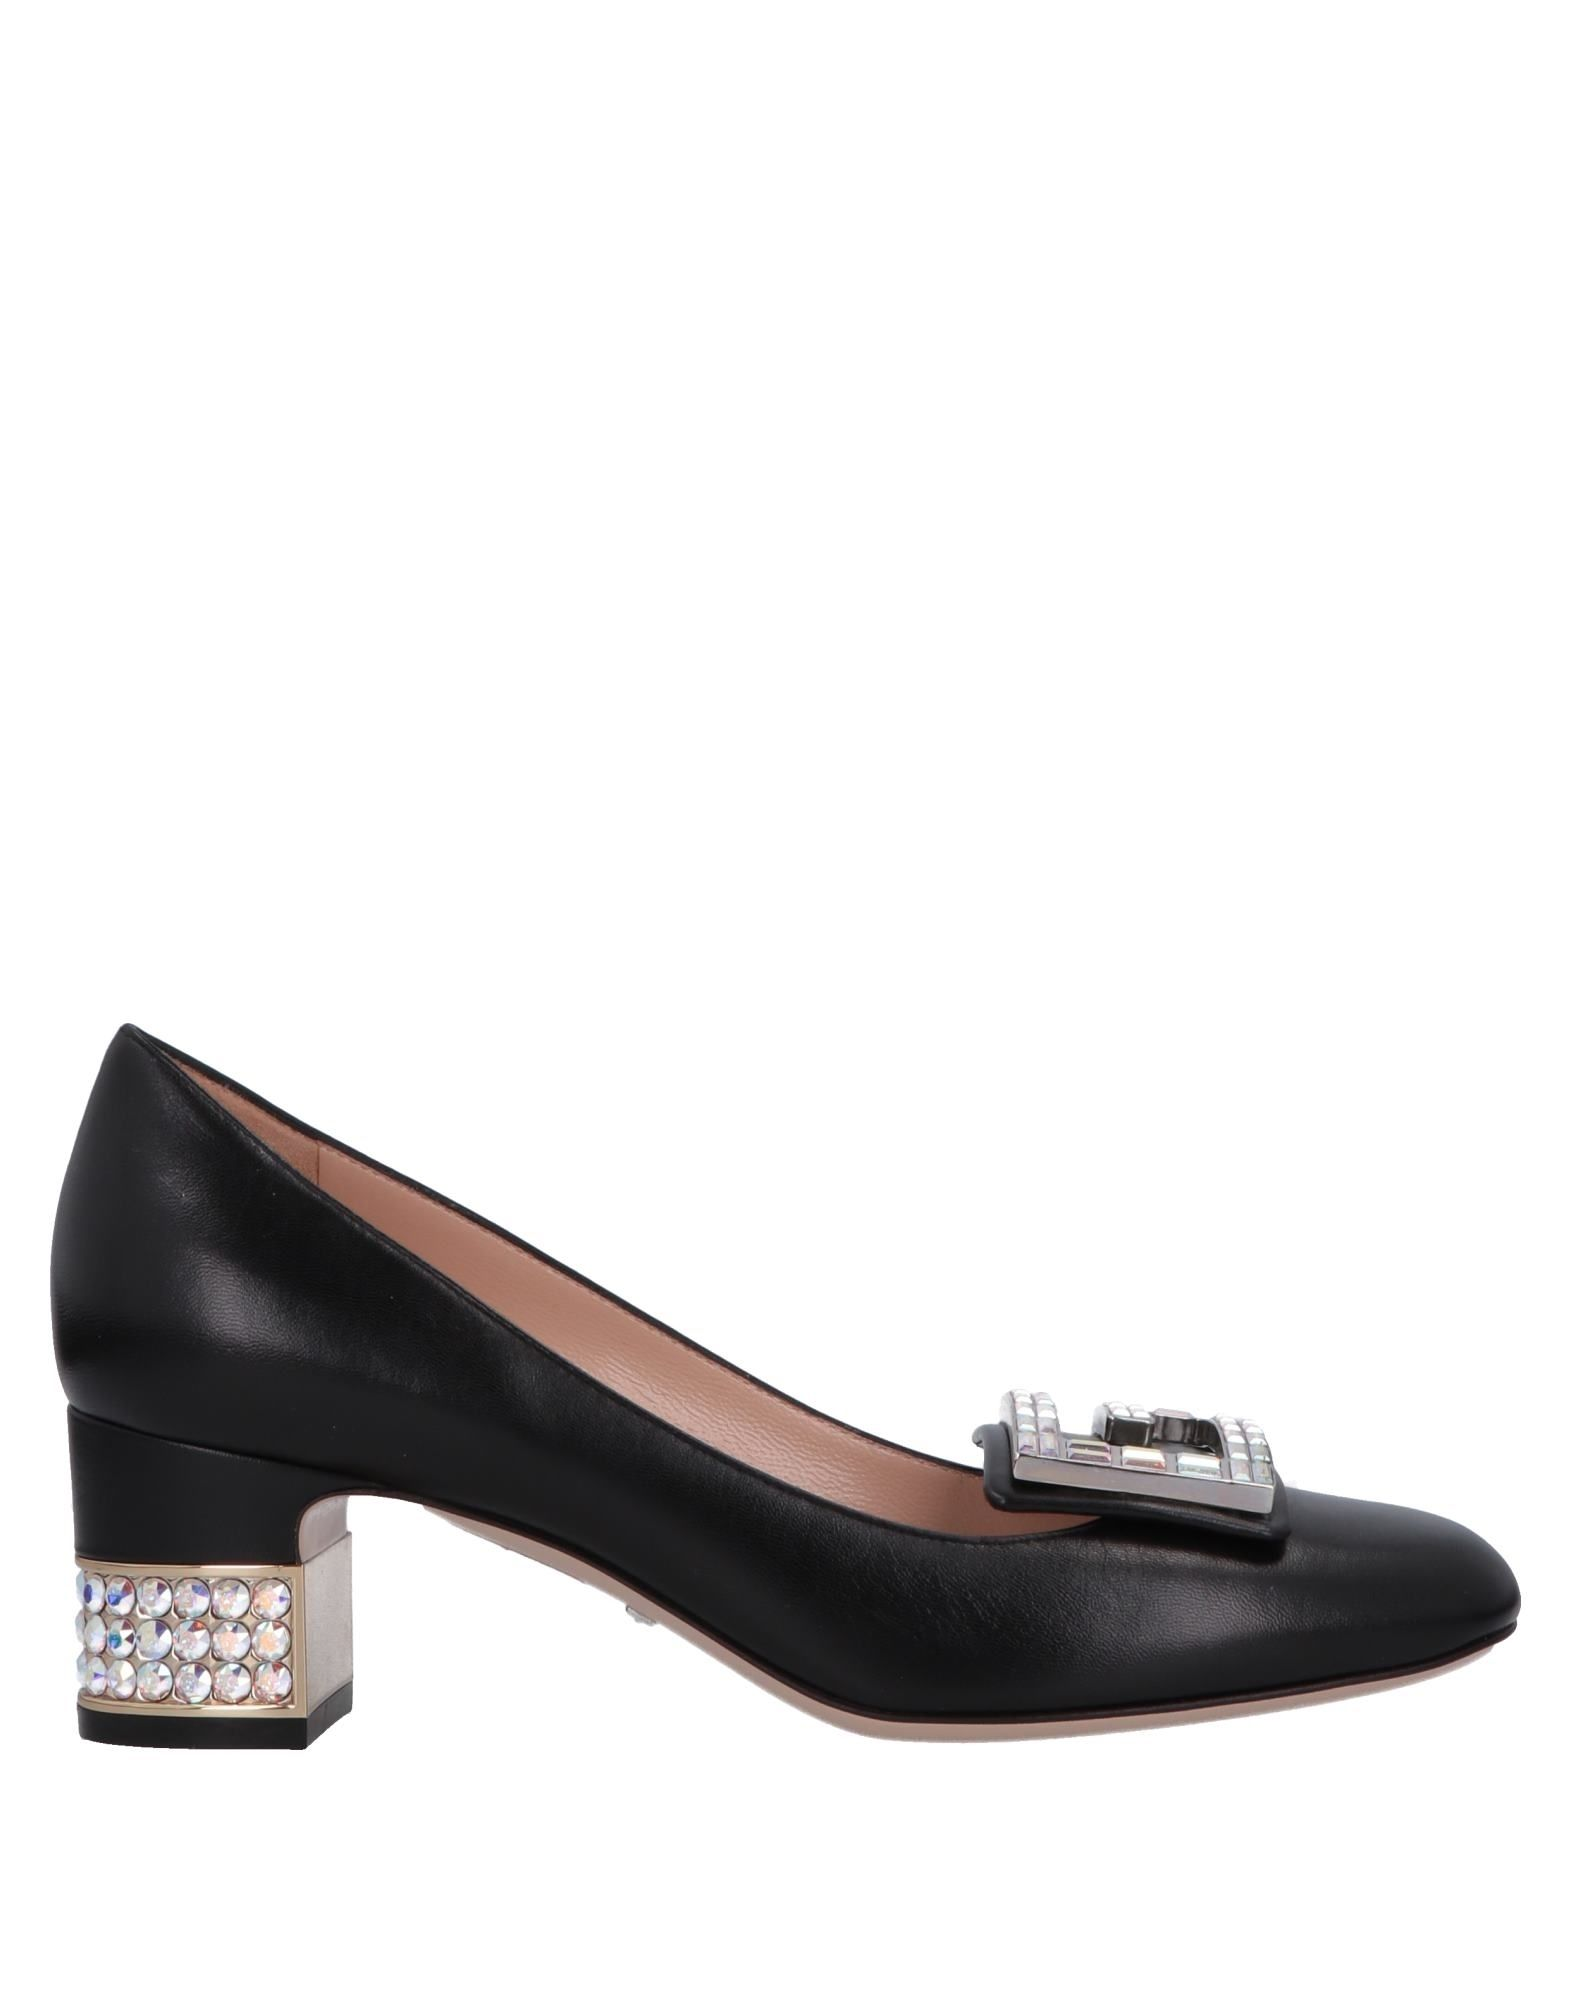 0bb7baee8 Gucci Loafers - Women Gucci Loafers online on YOOX Czech Republic ...